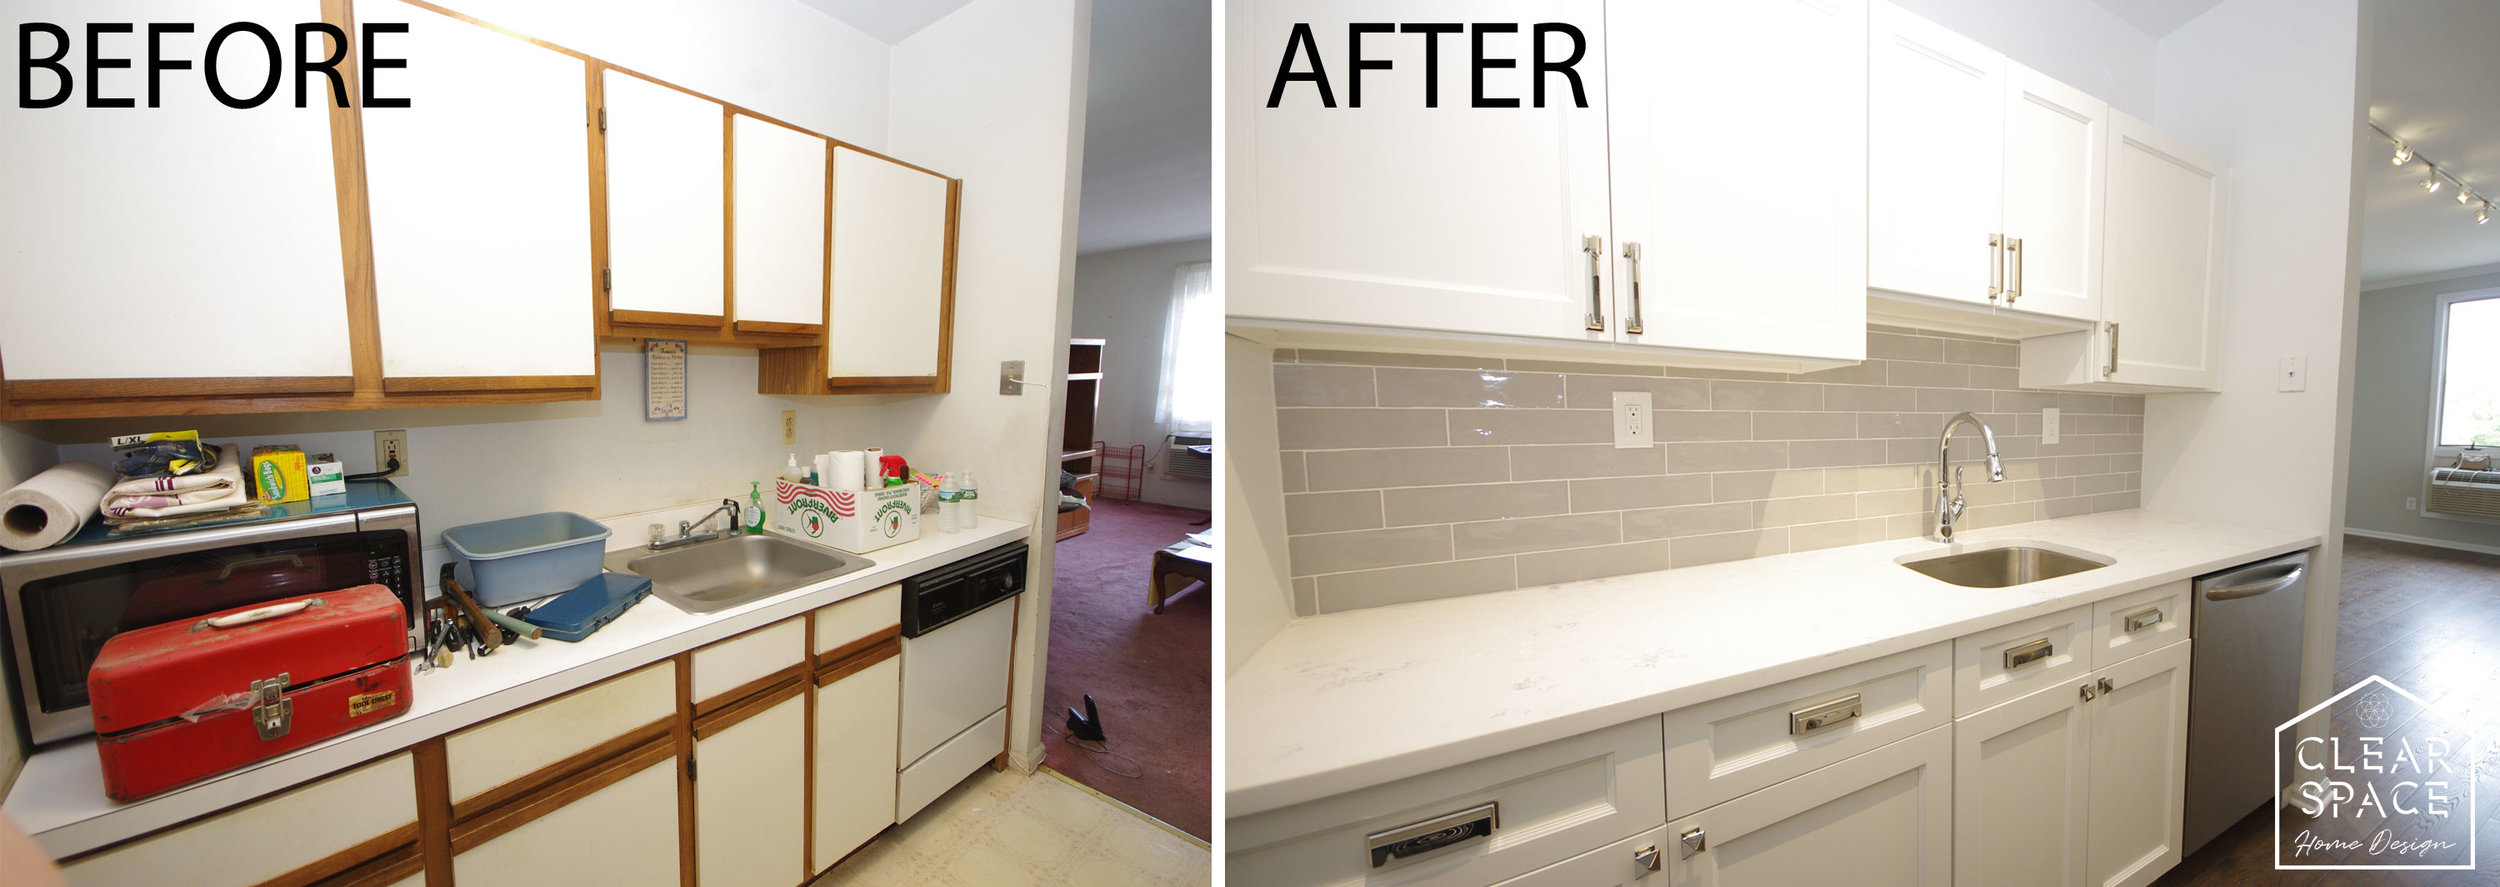 Goodbye 1980s white laminate and wood cabinet fronts!  Here I retrofitted new full overlay doors on the existing solid wood frames for a modern look plus new hardware, some stylish gray backsplash tile with marble-look quartz countertops.  My client upgraded to SS appliances.